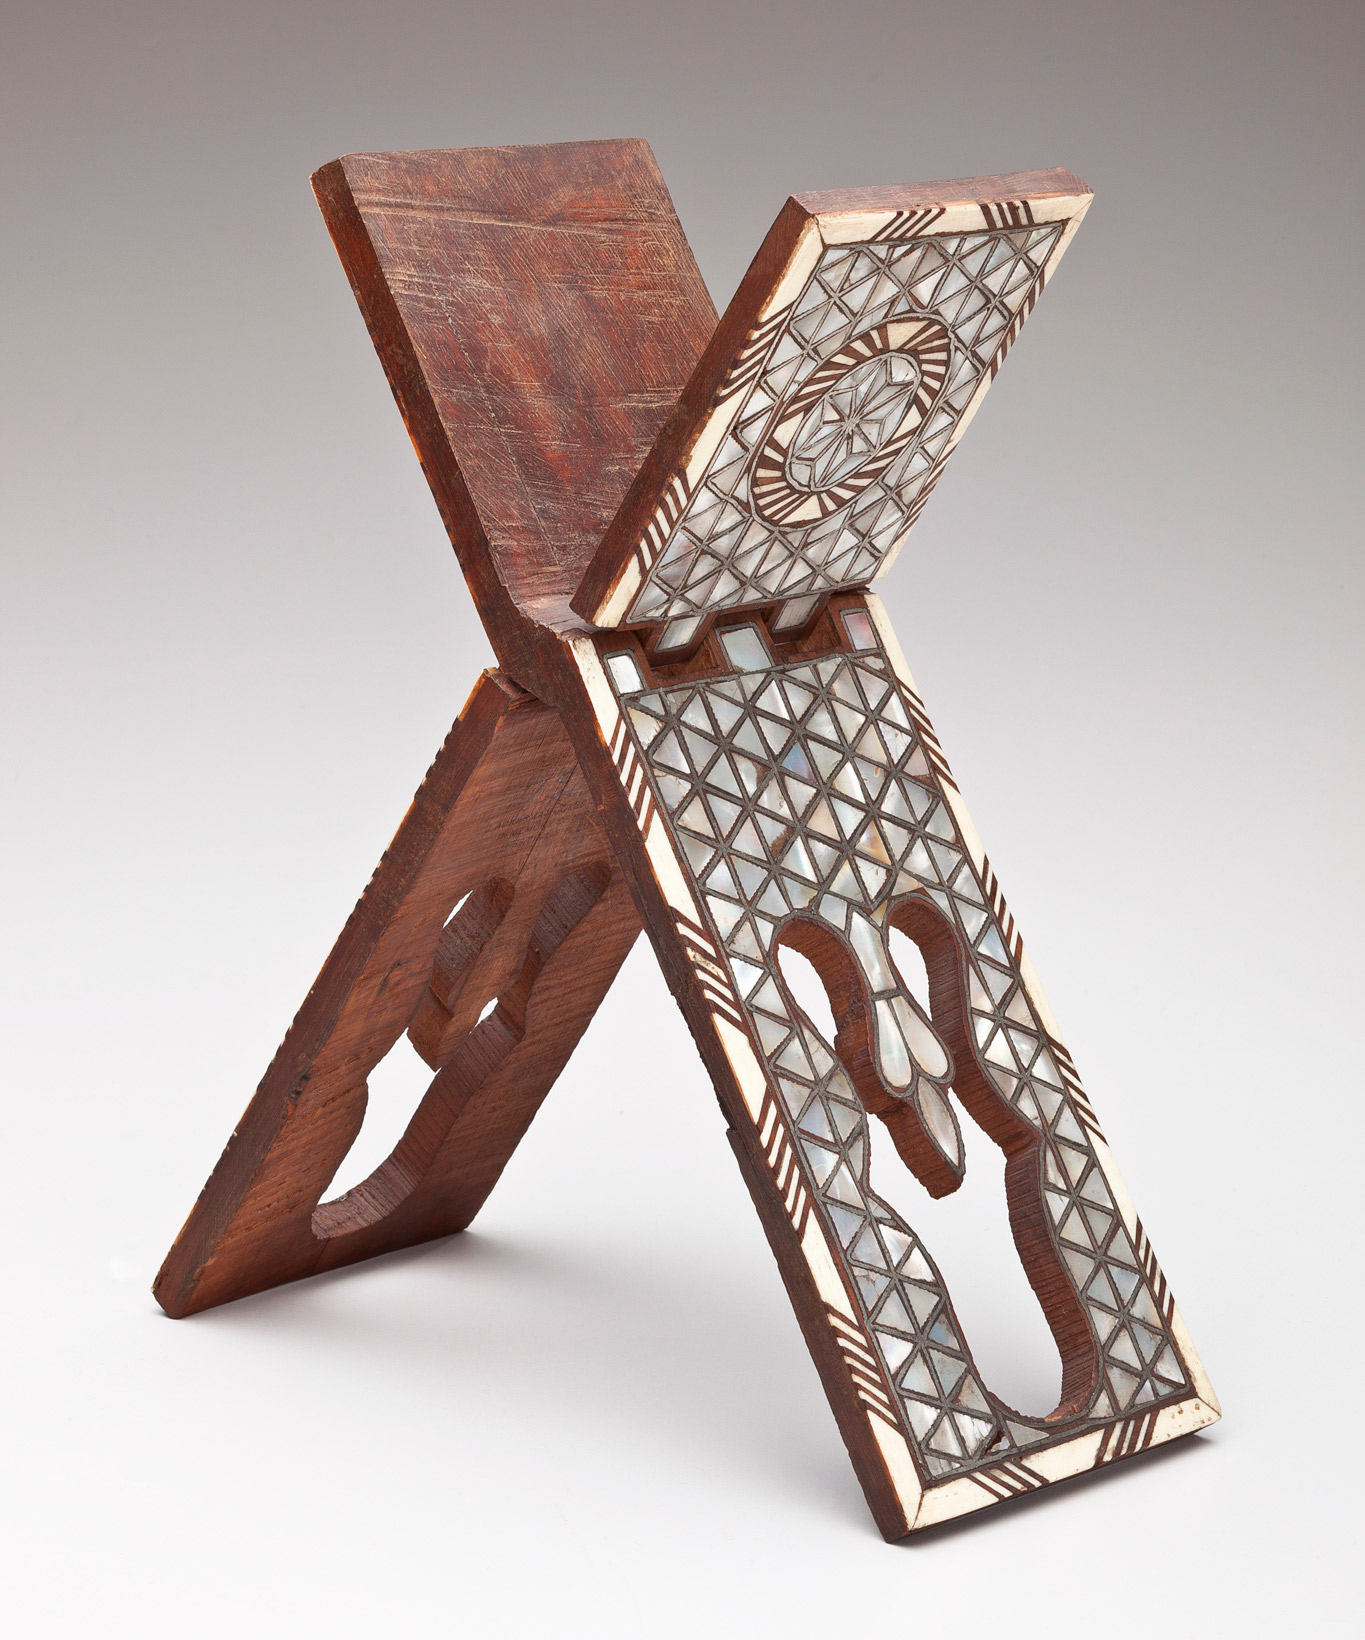 20.858.-Unknown,-Bookstand-(Rehal)-with-Geometric-Motif_950w